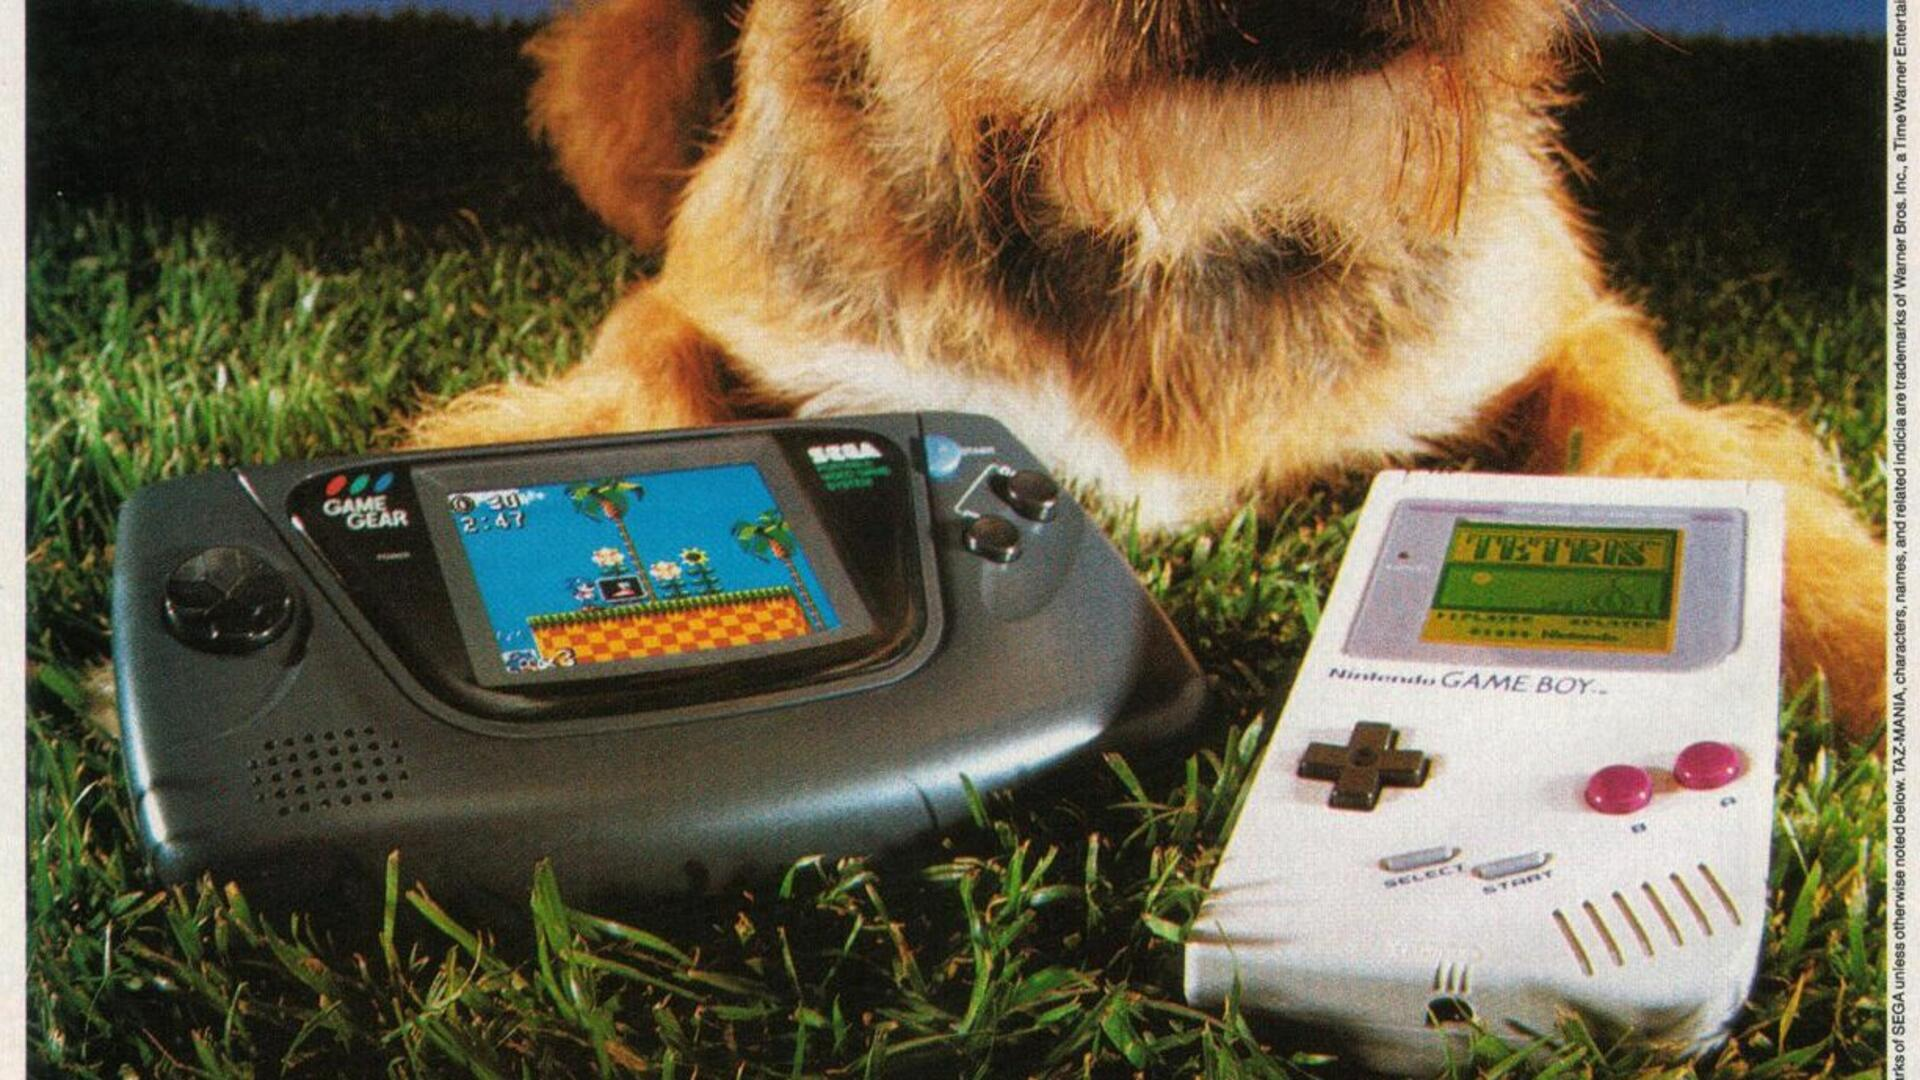 Sega's Failed Attempts to Mock the Game Boy are Still Funny 30 Years Later